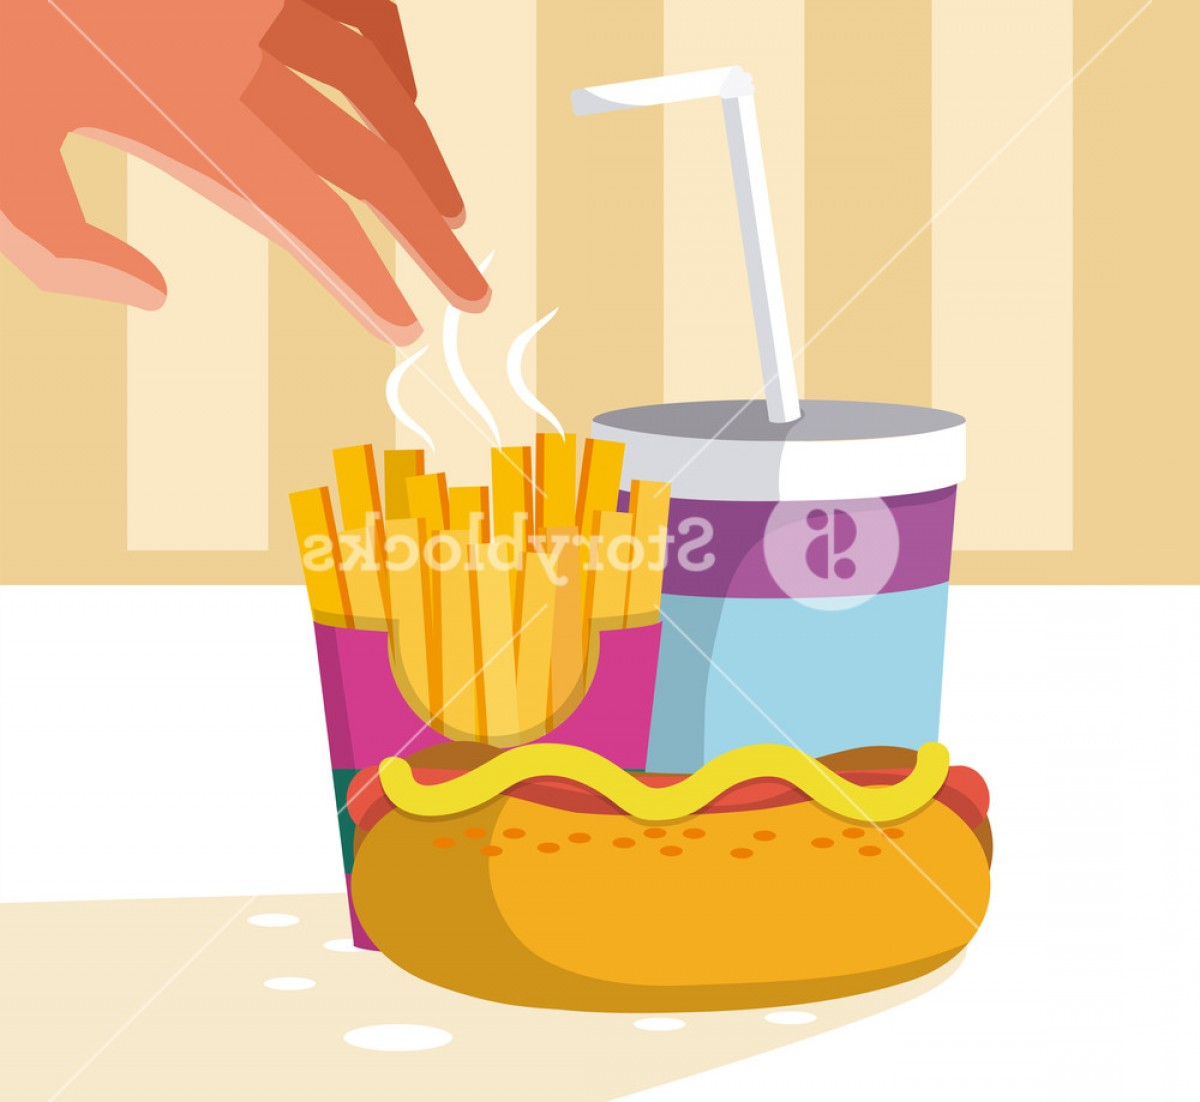 Fries Vector: Hotd Dog And French Fries Vector Illustration Graphic Design Sweppcntgjfgcjej